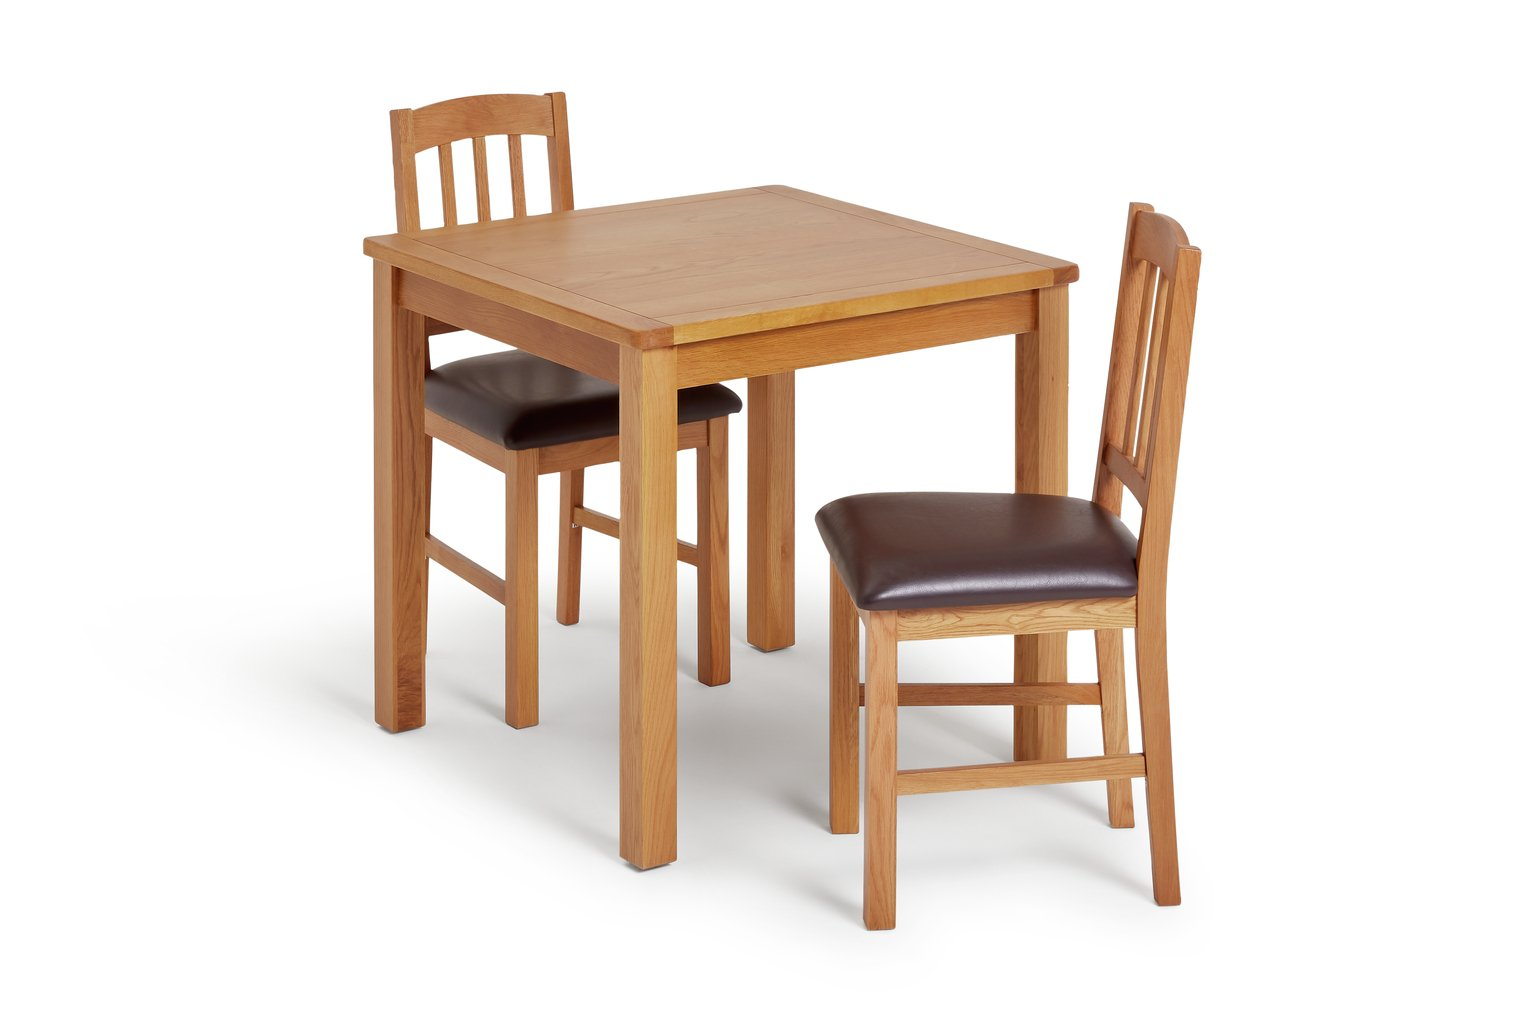 Image of Collection Ashwell Oak Veneer Dining Table & 2 Chairs